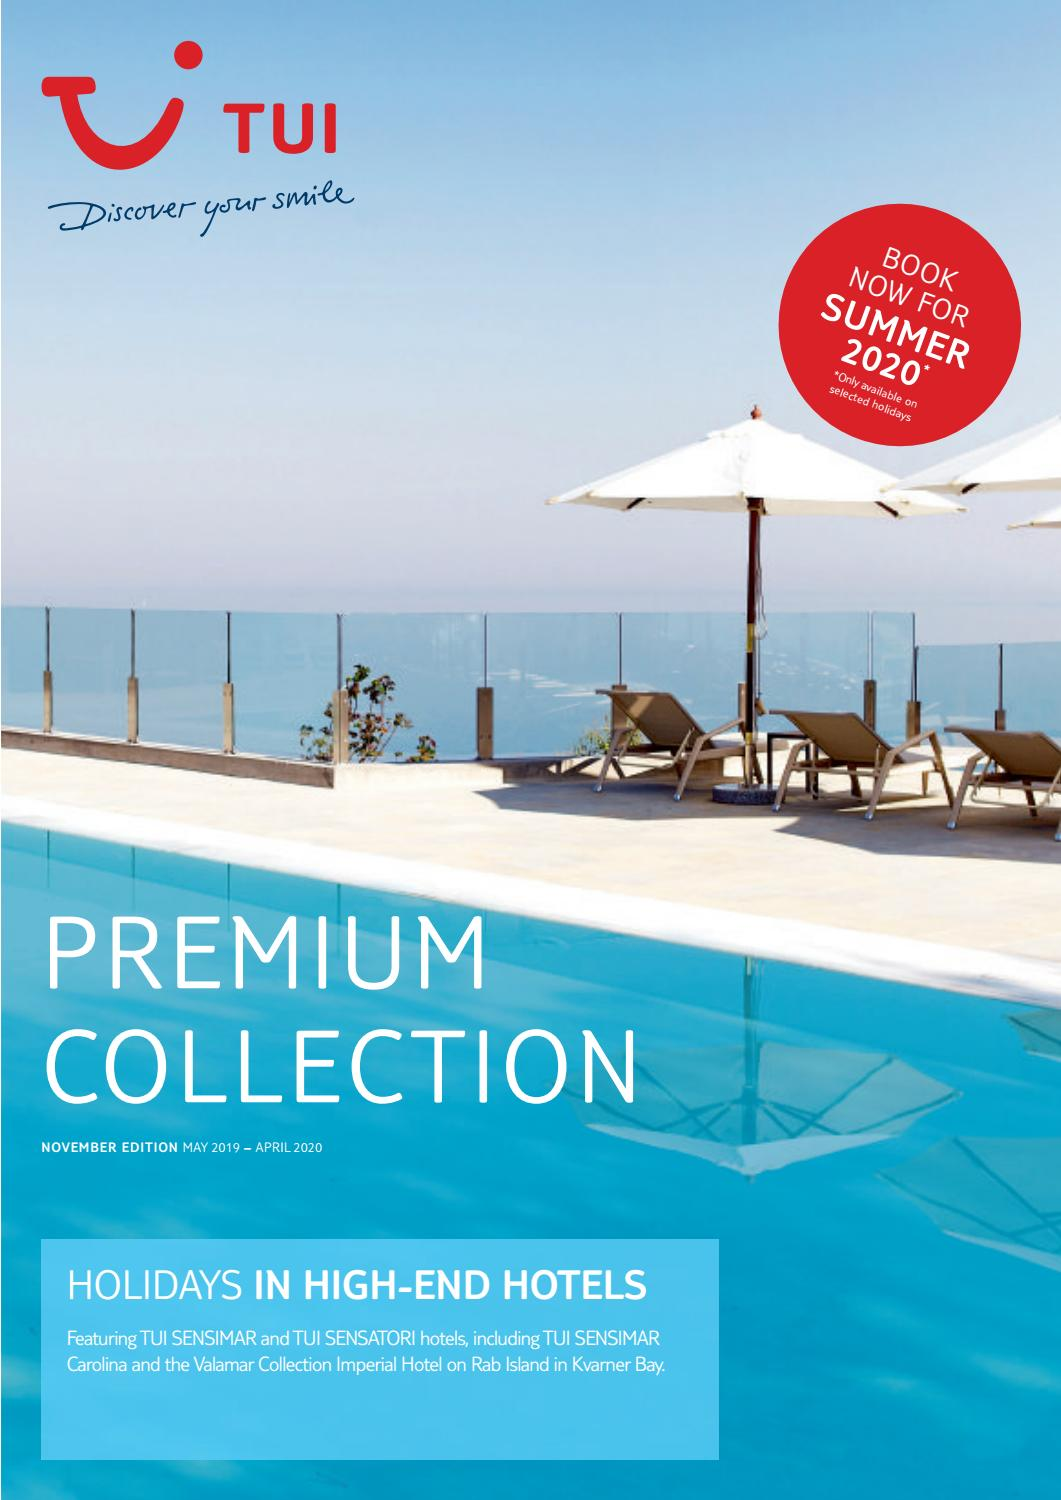 Premium Collection From Tui By Sarah Tastsidis Tasteful